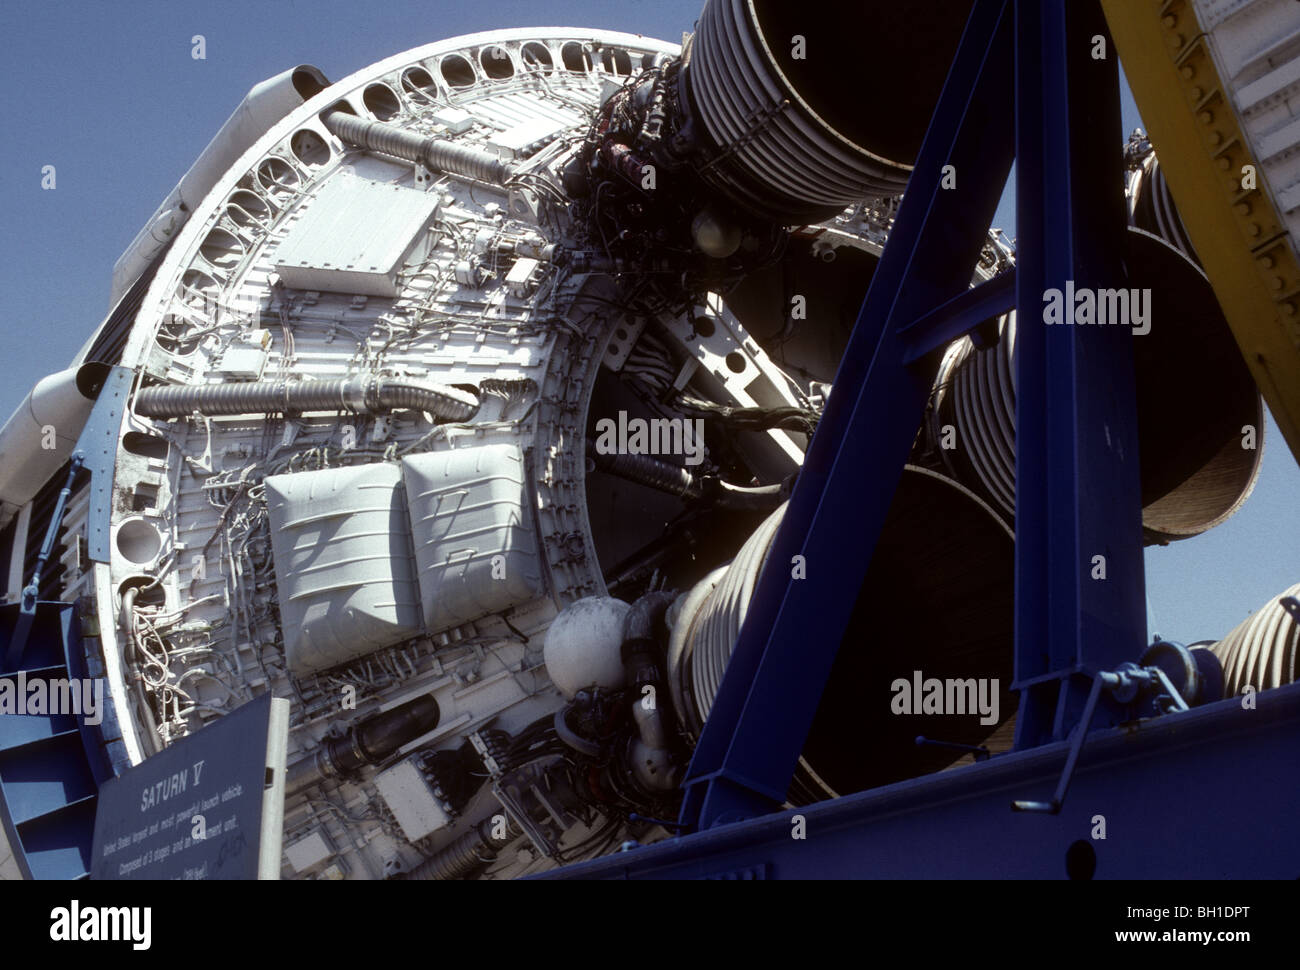 Saturn V Rocket tourist attraction. Kodachromes of Florida tourist sites during the 1980s. - Stock Image